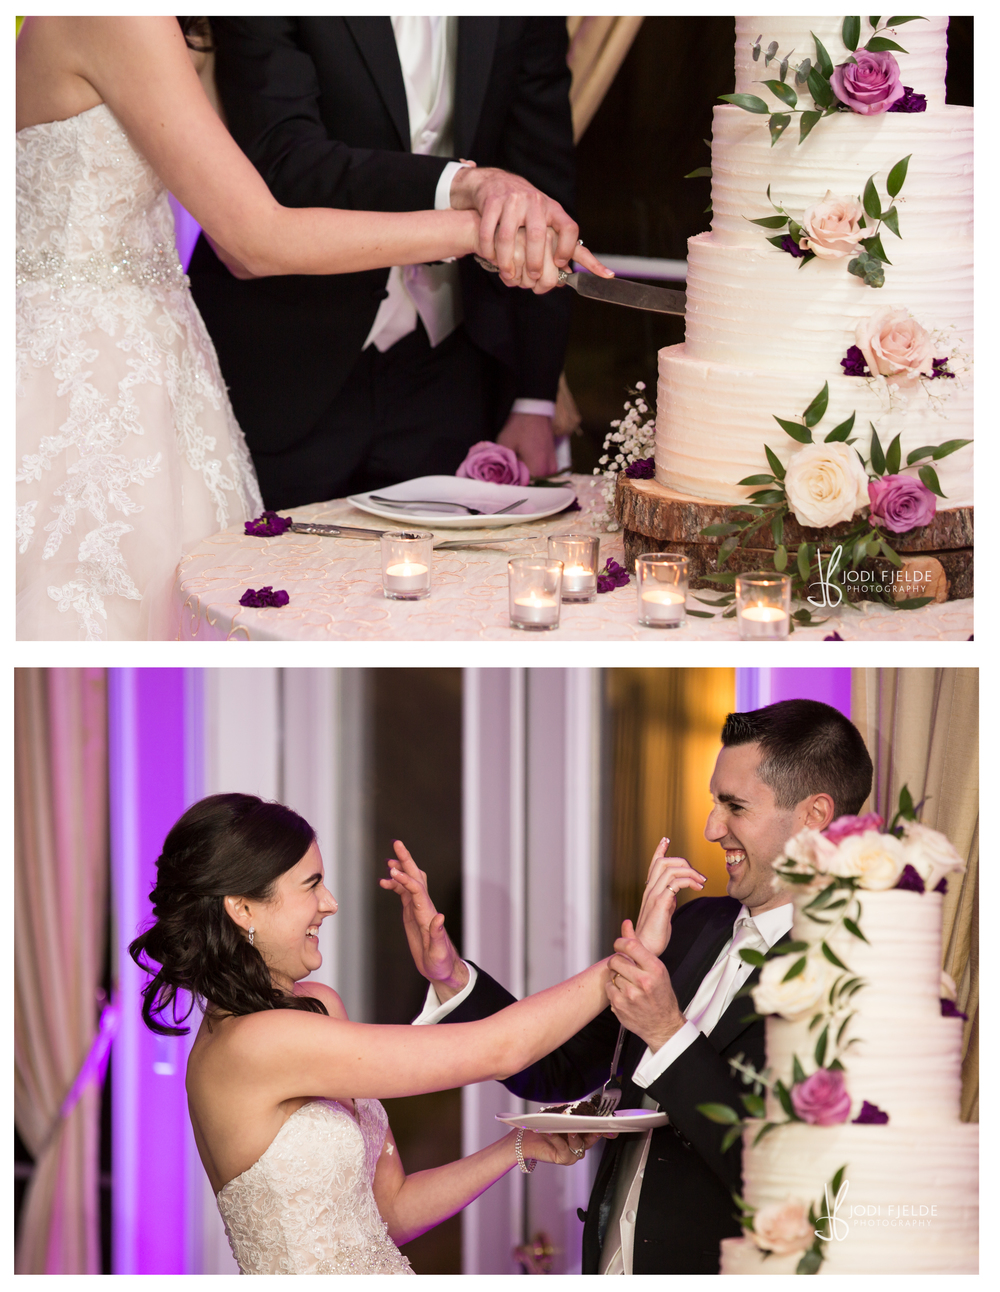 Benvenuto_Palm_Beach_Wedding_Jewish_Michelle & Jason_Jodi_Fjedle_Photography 71.jpg